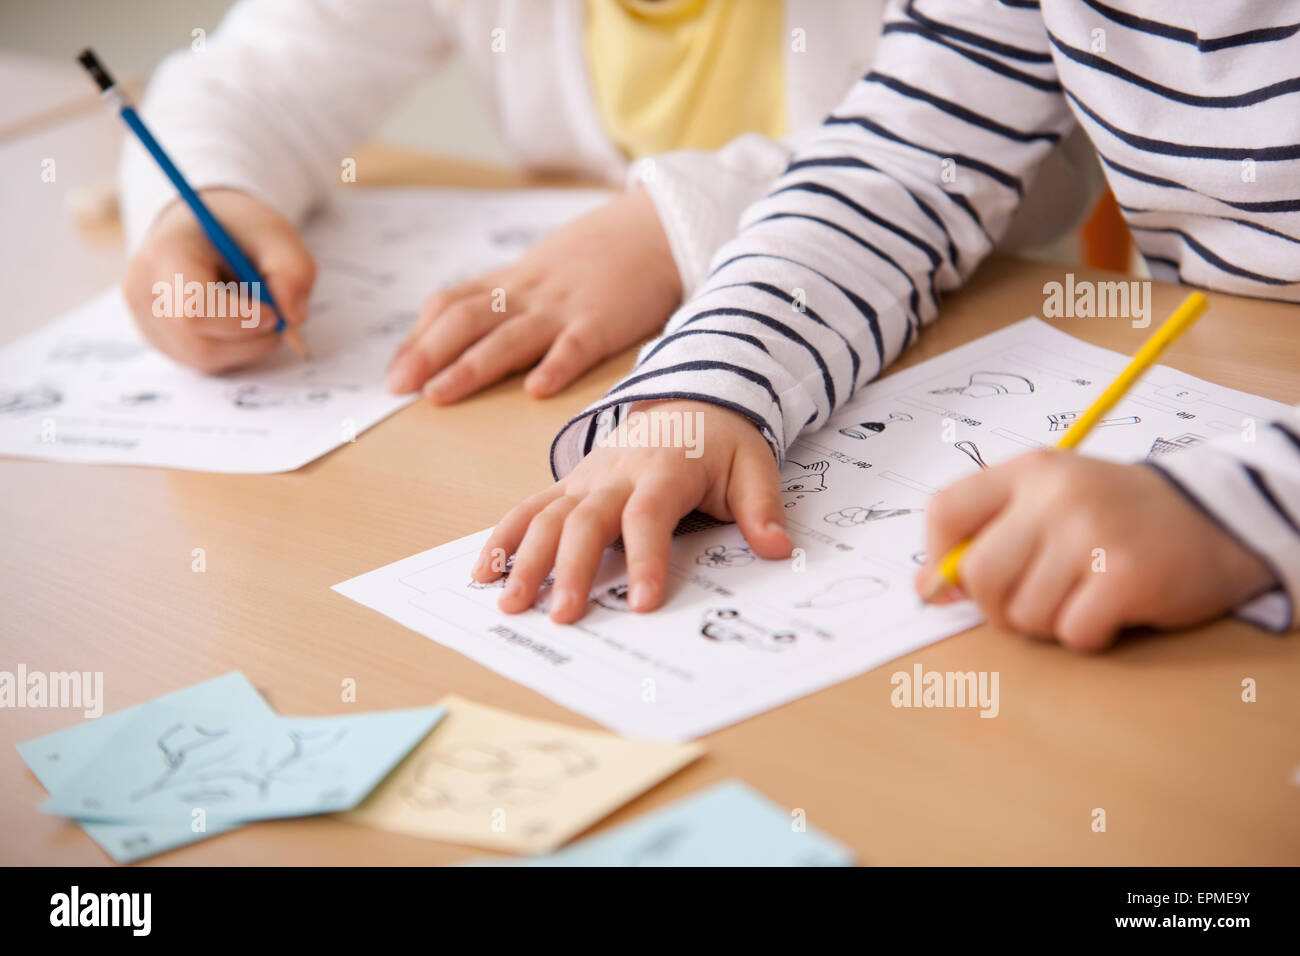 Work Sheets Stock Photos & Work Sheets Stock Images - Alamy